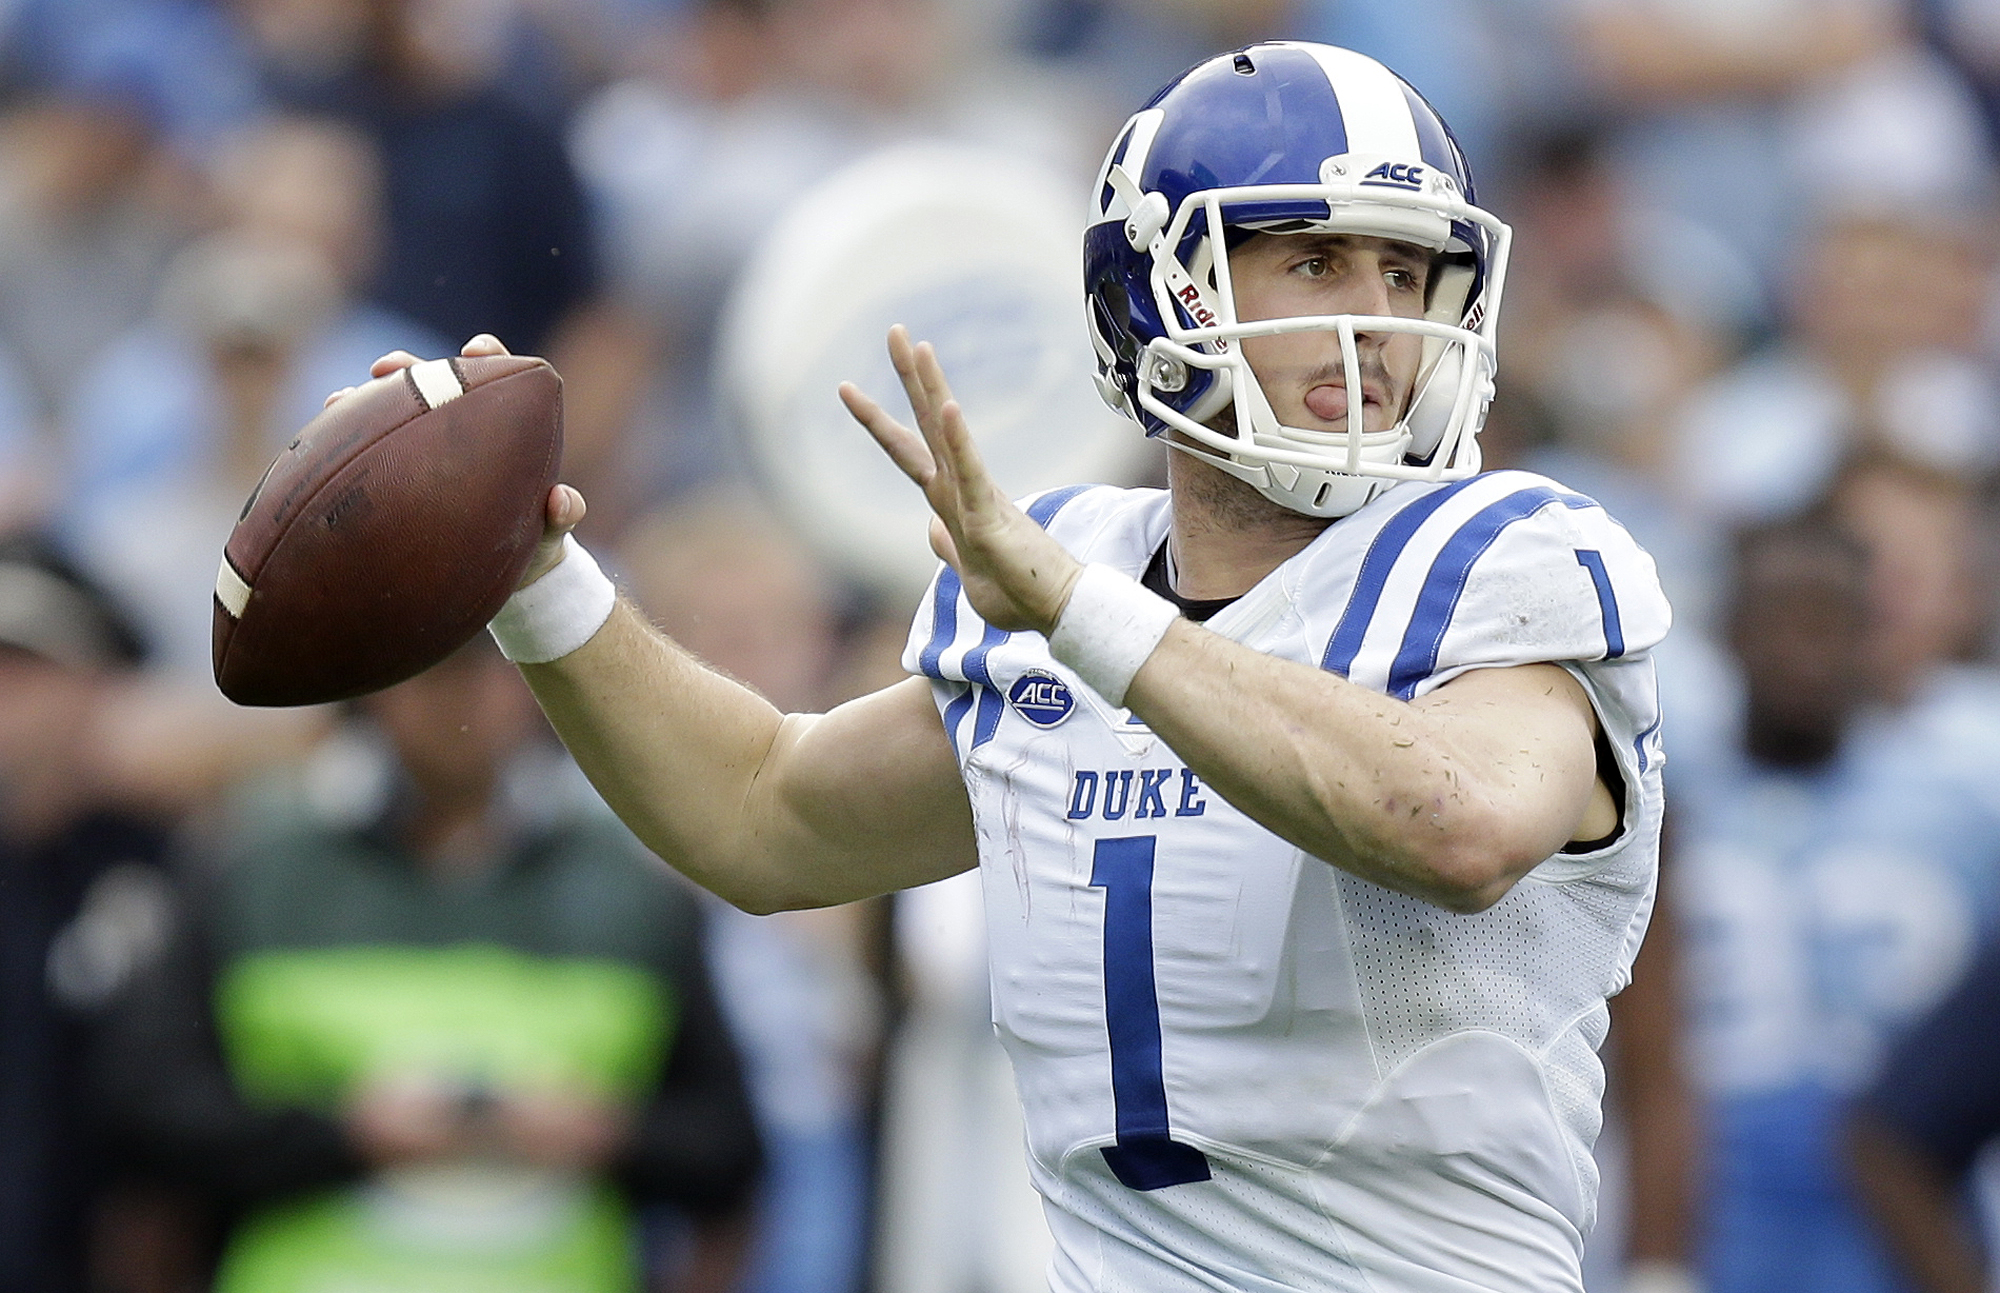 Duke quarterback Thomas Sirk (1) looks to pass against North Carolina during the first half of an NCAA college football game in Chapel Hill, N.C., Saturday, Nov. 7, 2015. (AP Photo/Gerry Broome)